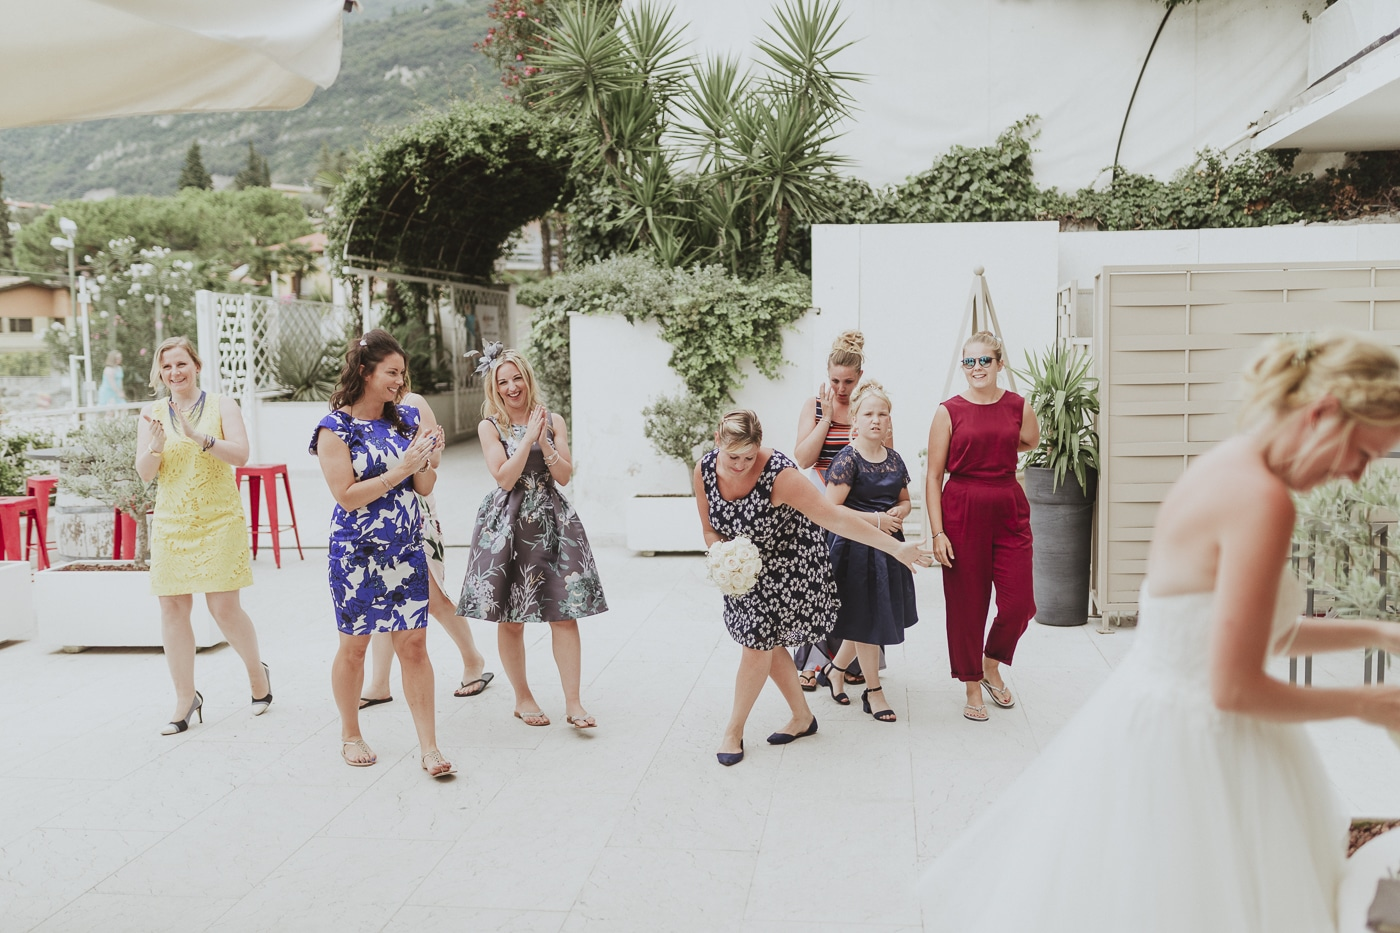 Group of women in wedding guest attire attempting to catch the bridal bouquet with white walkways and foliage in the background by Joshua Wyborn